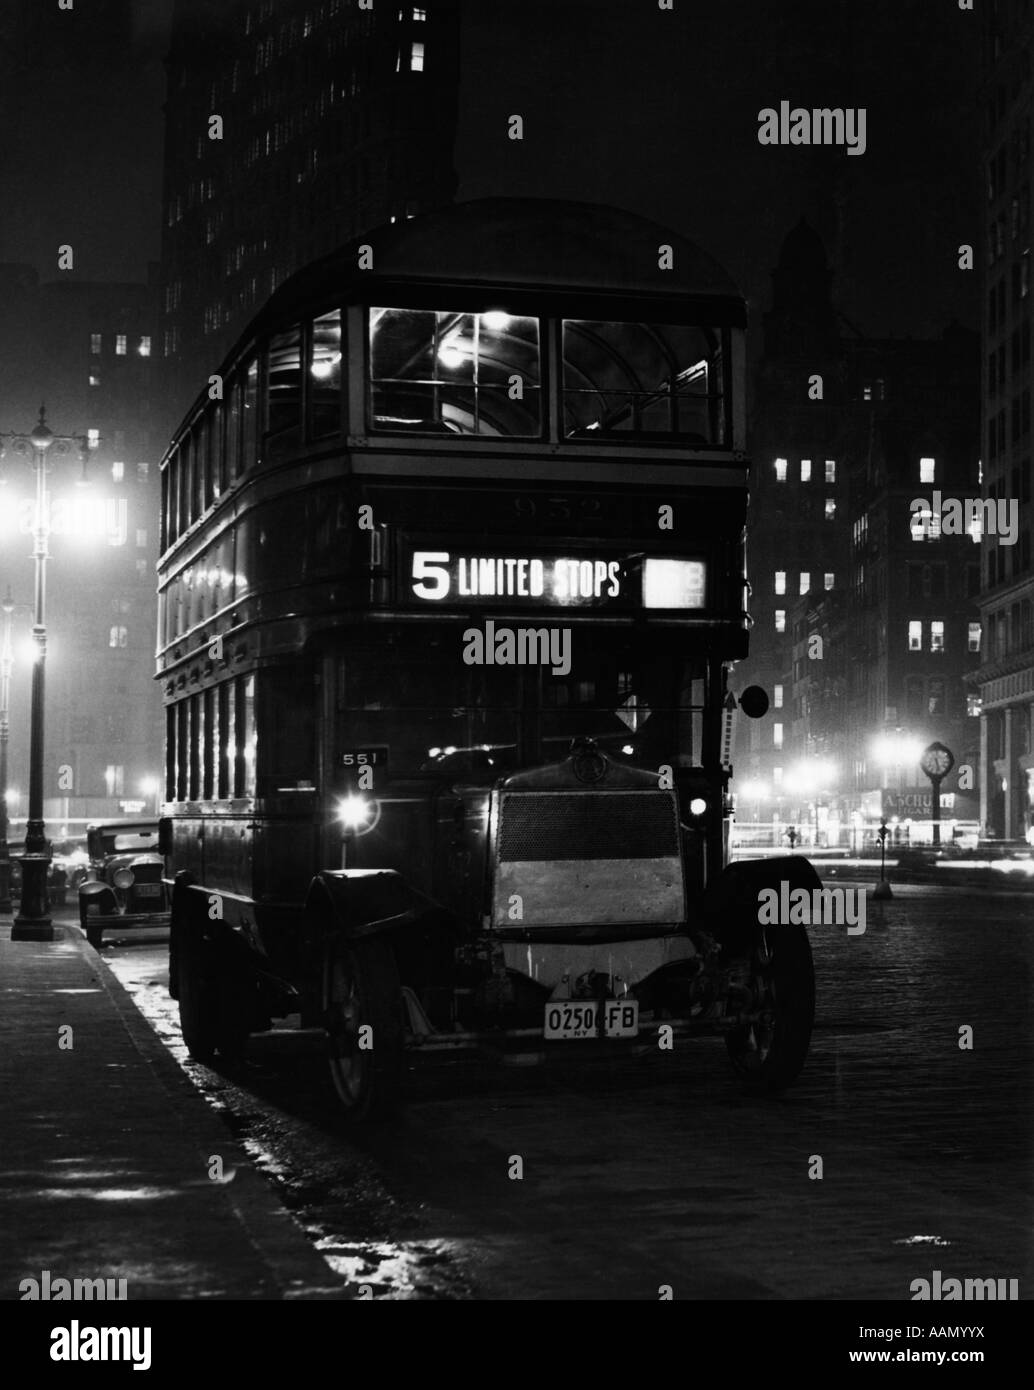 1930s DOUBLE-DECKER 5TH AVENUE BUS AT NIGHT NEAR FLATIRON BUILDING NEW YORK CITY USA - Stock Image